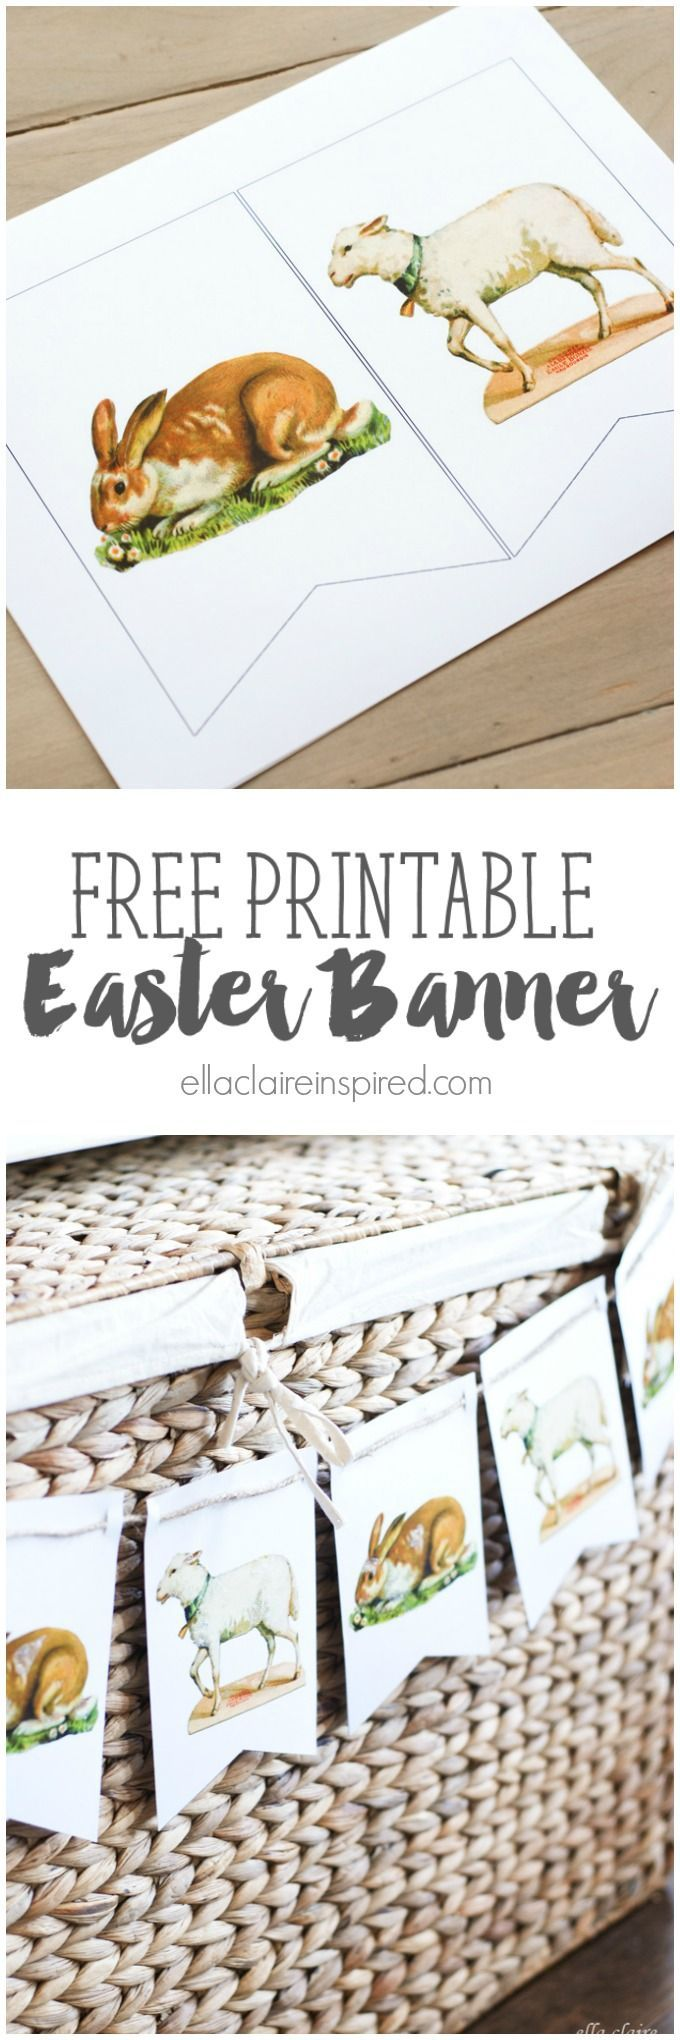 best images about invites templates christmas easter bunny and lamb banner